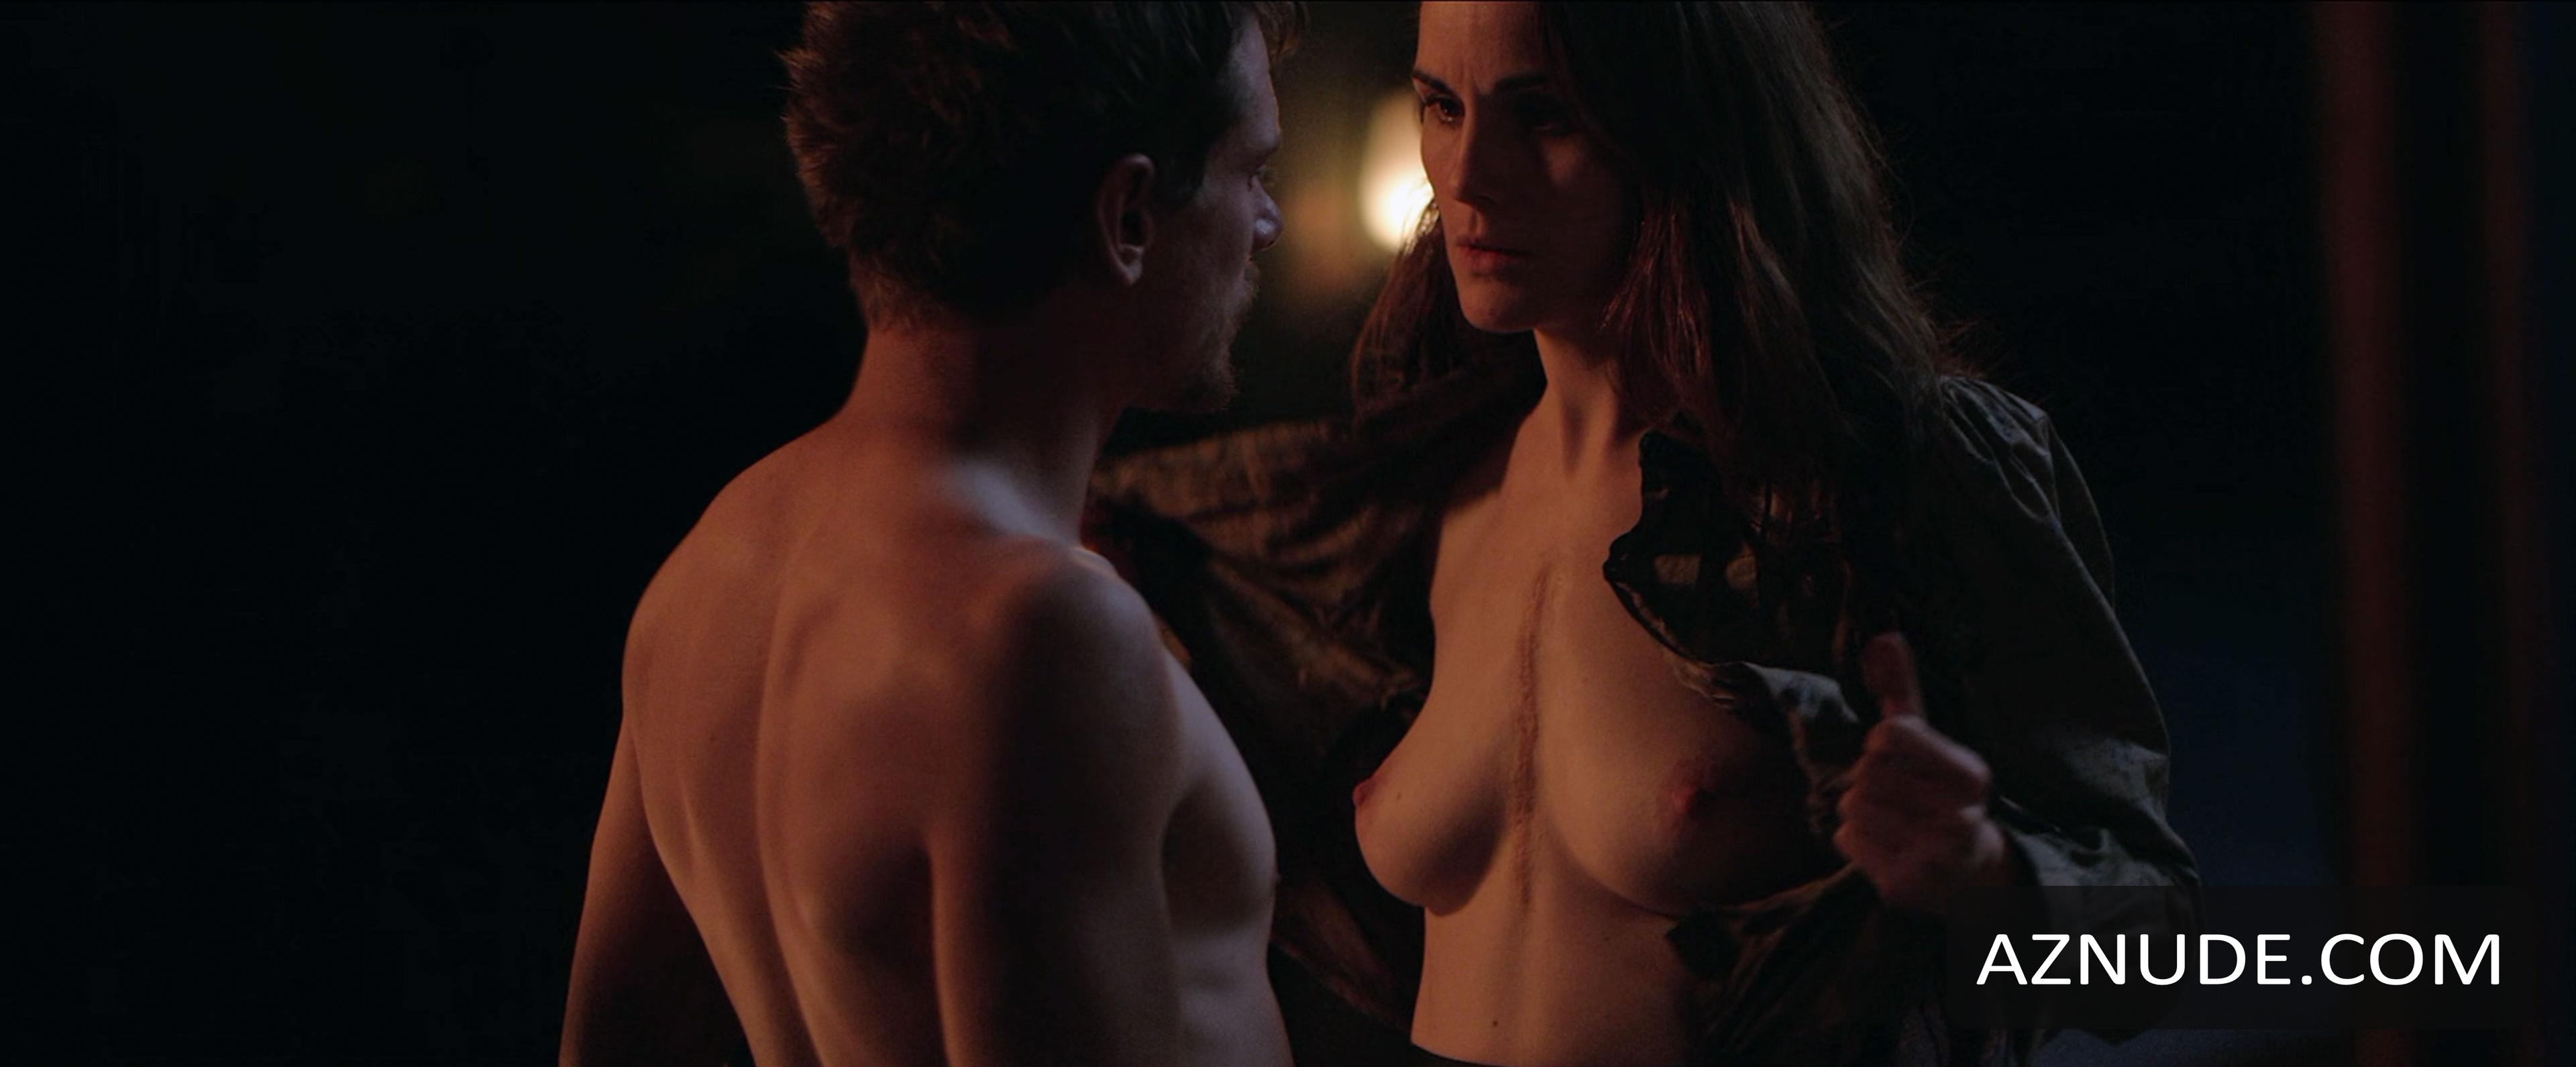 Porno Michelle Dockery nude (46 foto and video), Topless, Hot, Selfie, see through 2006